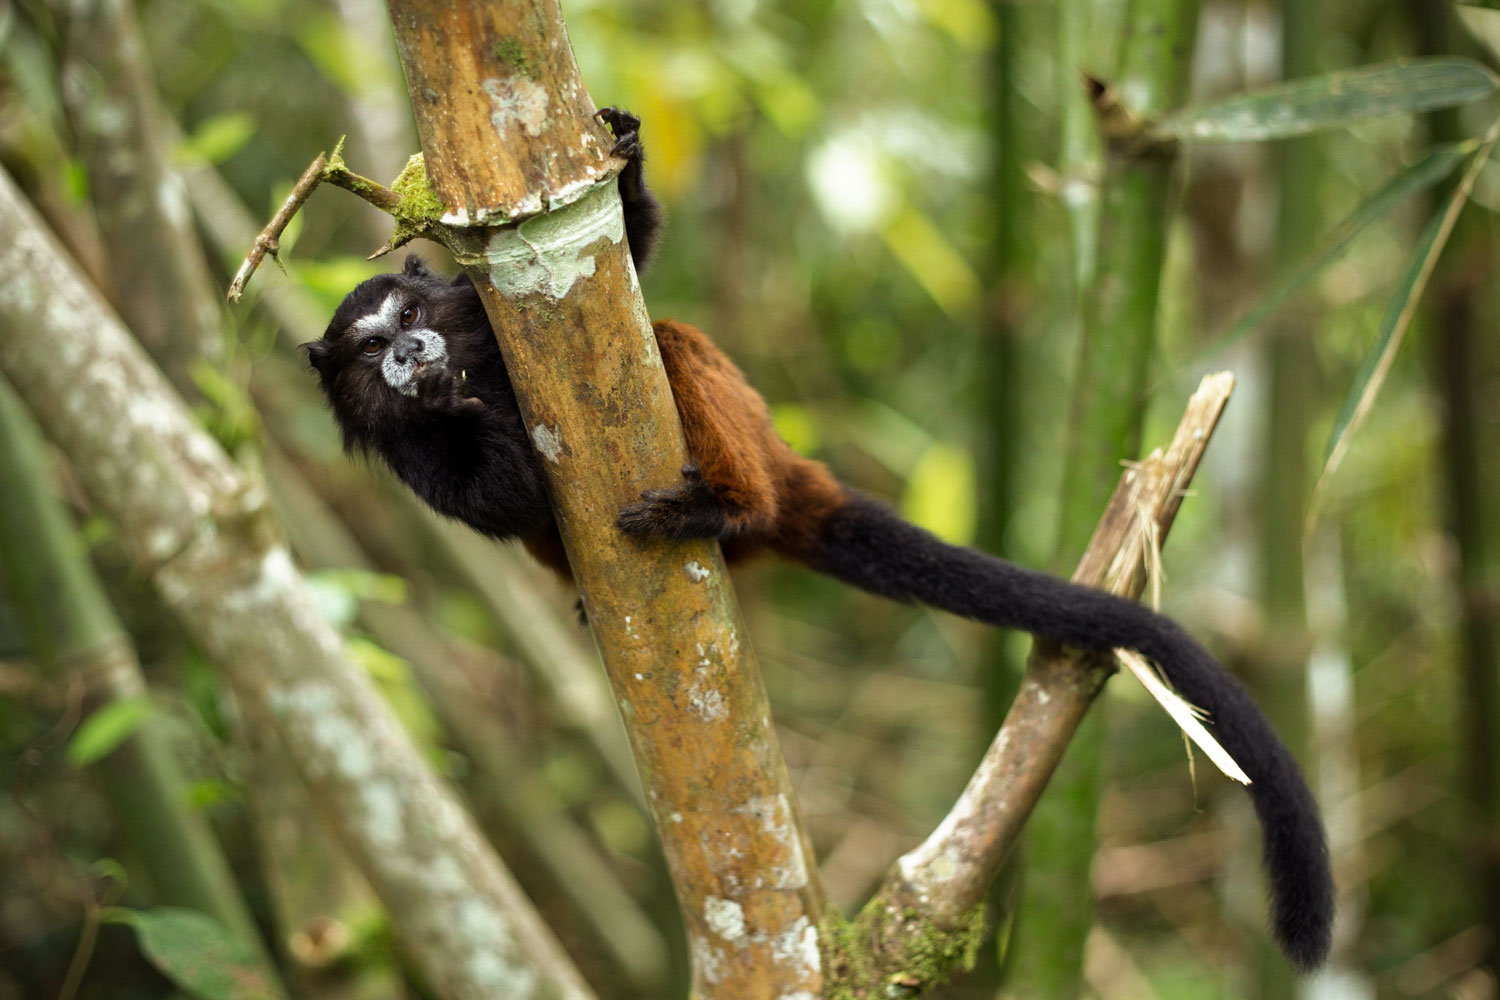 Manu National Park boasts one of the highest degrees of biodiversity in the world. Debates rage as to whether the presence of communities like Yomibato help to protect or further endanger wild animals such as this marmoset, seen swinging from a branch along the Manu River. Photo: Brett Monroe Garner